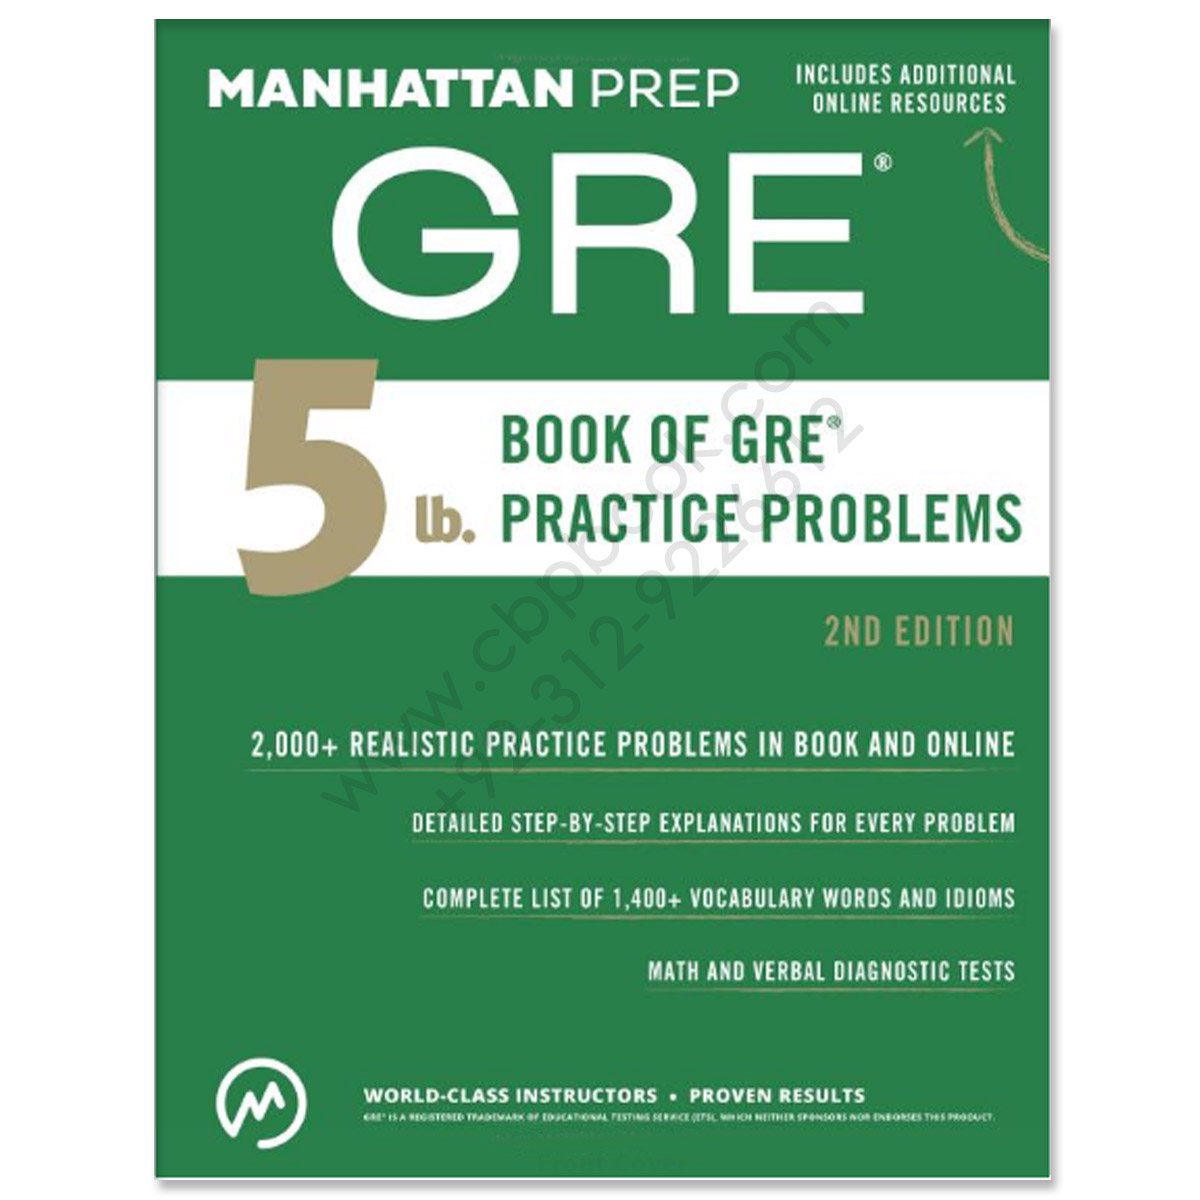 Gre product categories cbpbook pakistans largest online 5 lb book of gre practice problems manhattan prep 2nd edition fandeluxe Gallery